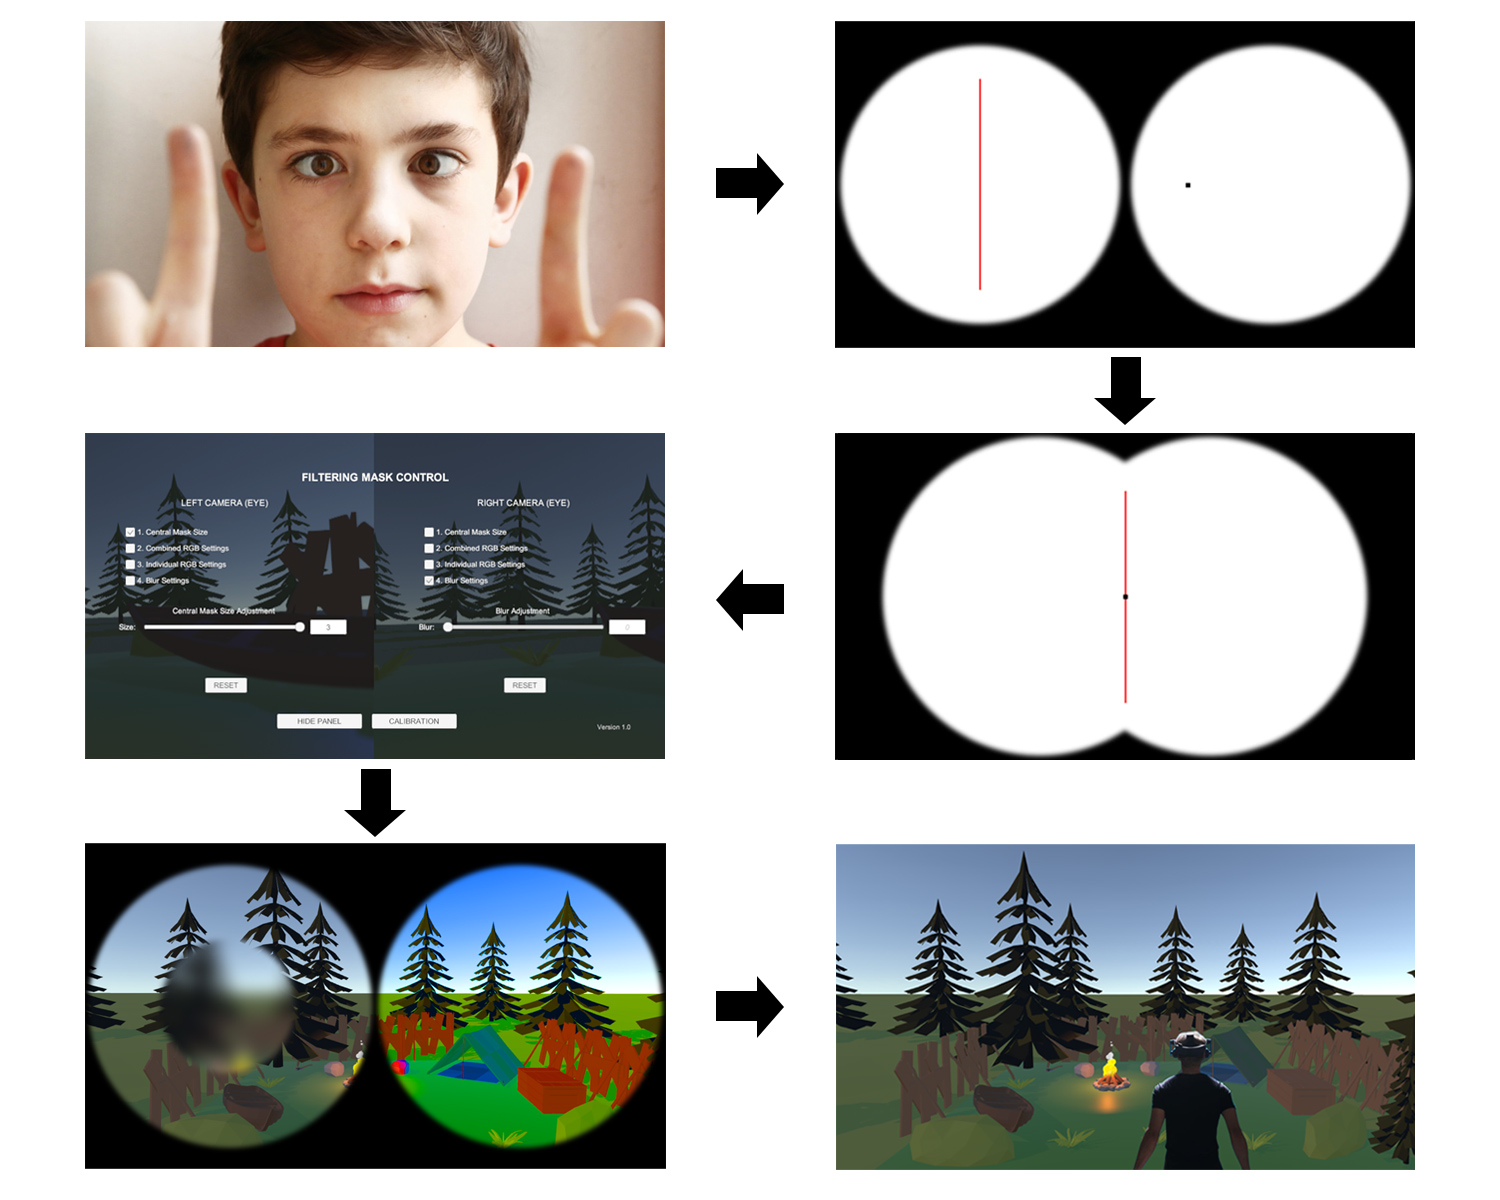 eye conditions_vision science_treatment overview